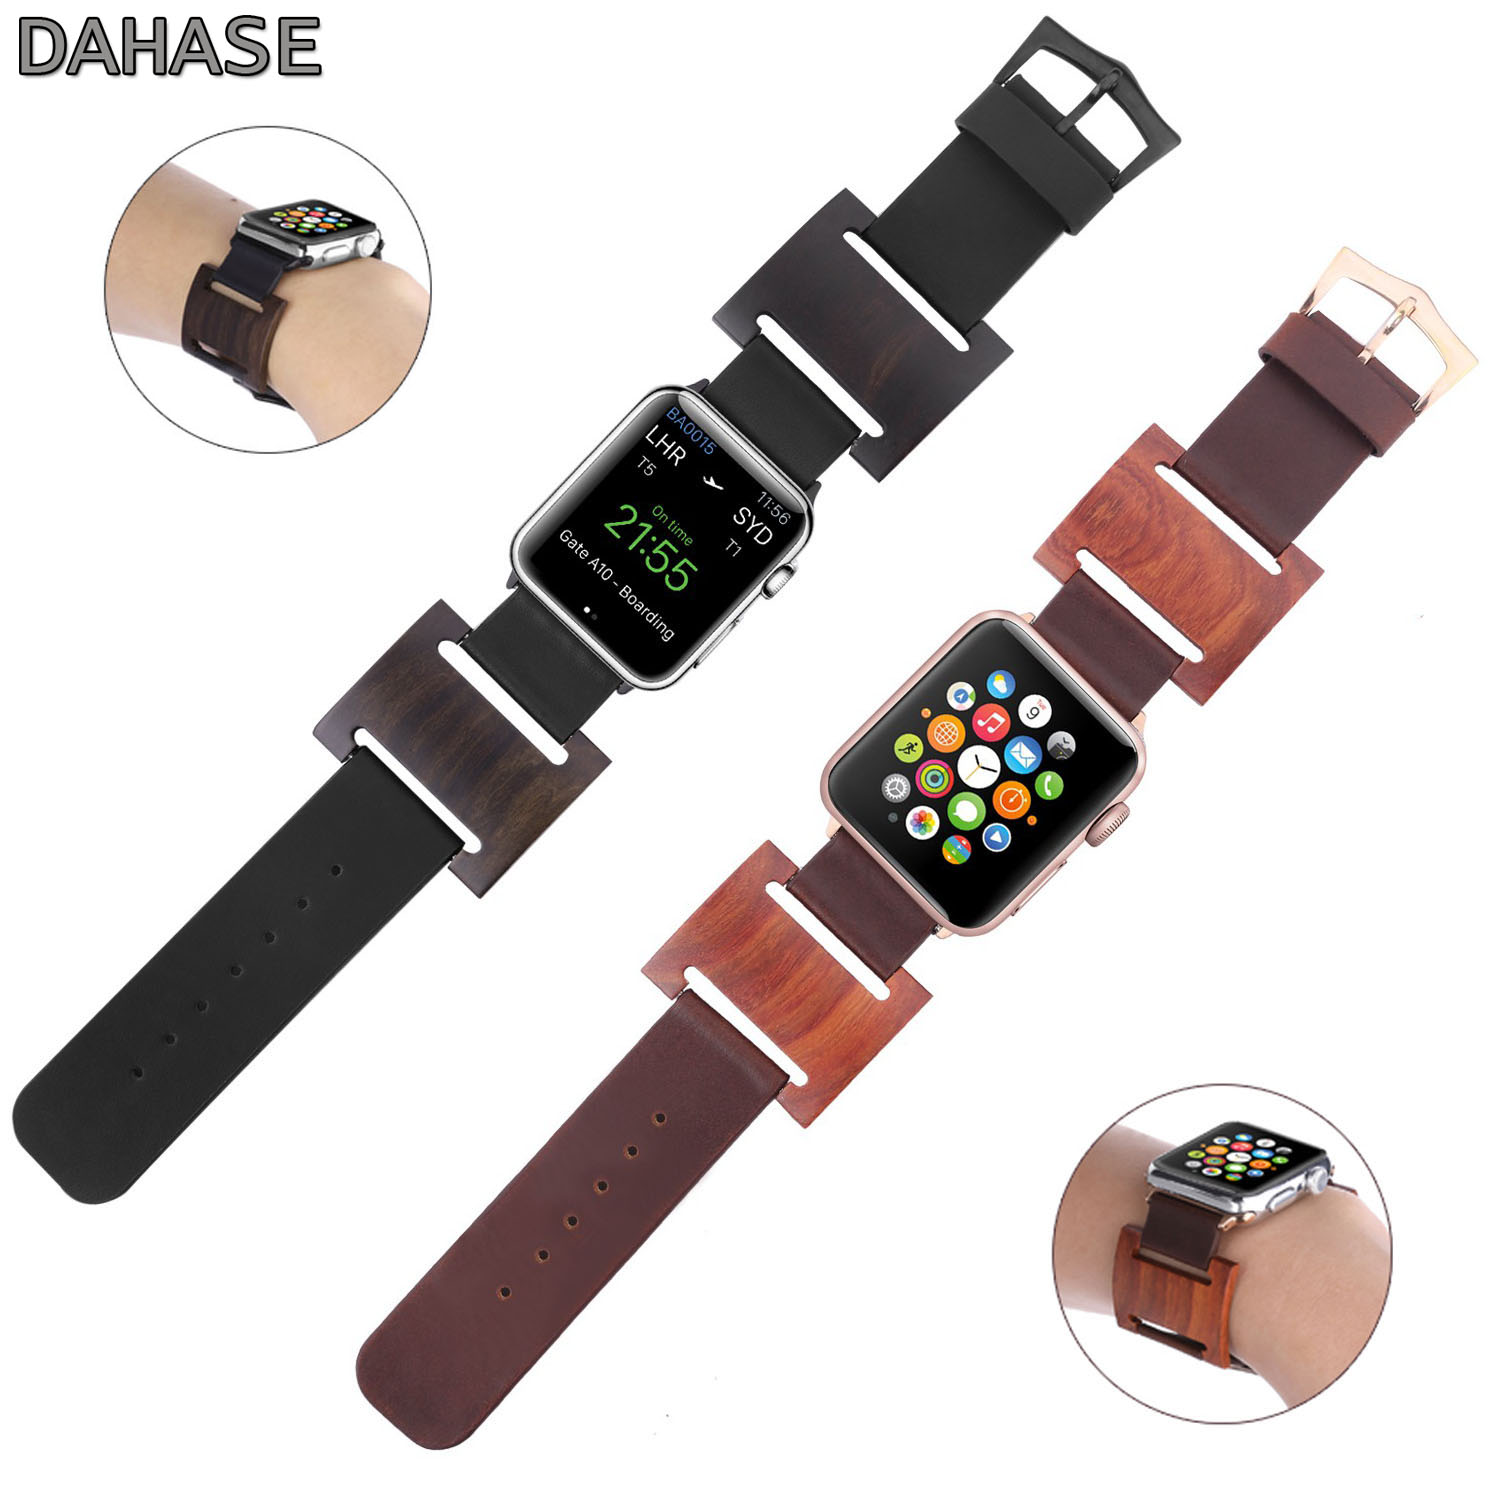 dahase dual colors sport silicone strap for apple watch band series 1 2 3 protect cover for apple watch case 42mm 38mm bracelet DAHASE Real Natural Wood Genuine Leather Bracelet for Apple Watch Series 1 2 3 Strap Watch Band for iWatch Wristband 42mm 38mm